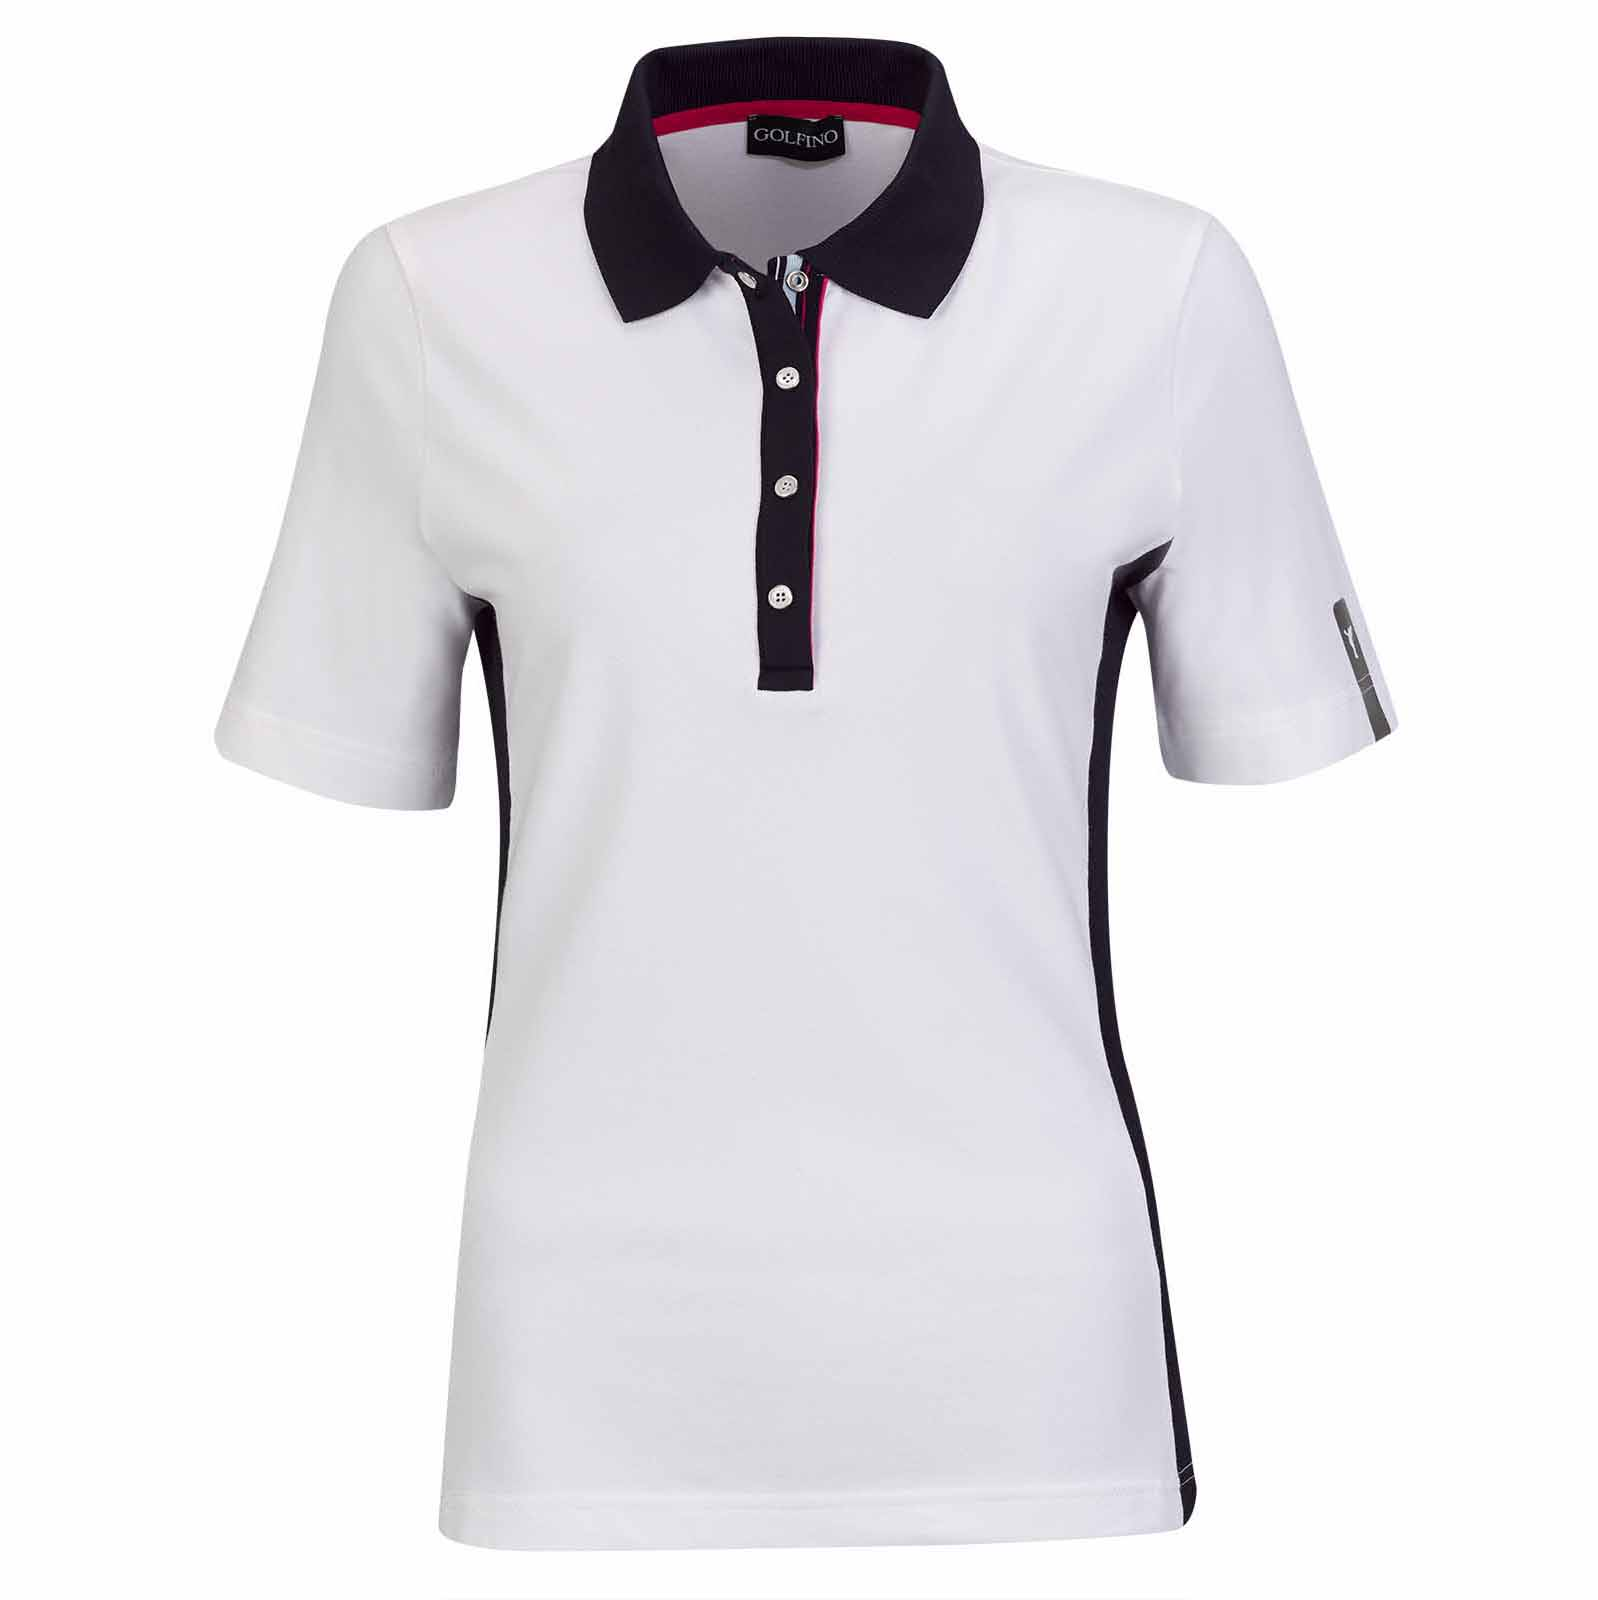 Damen Kurzarm Performance Golfpolo mit Sun Protection und Stretchfunktion